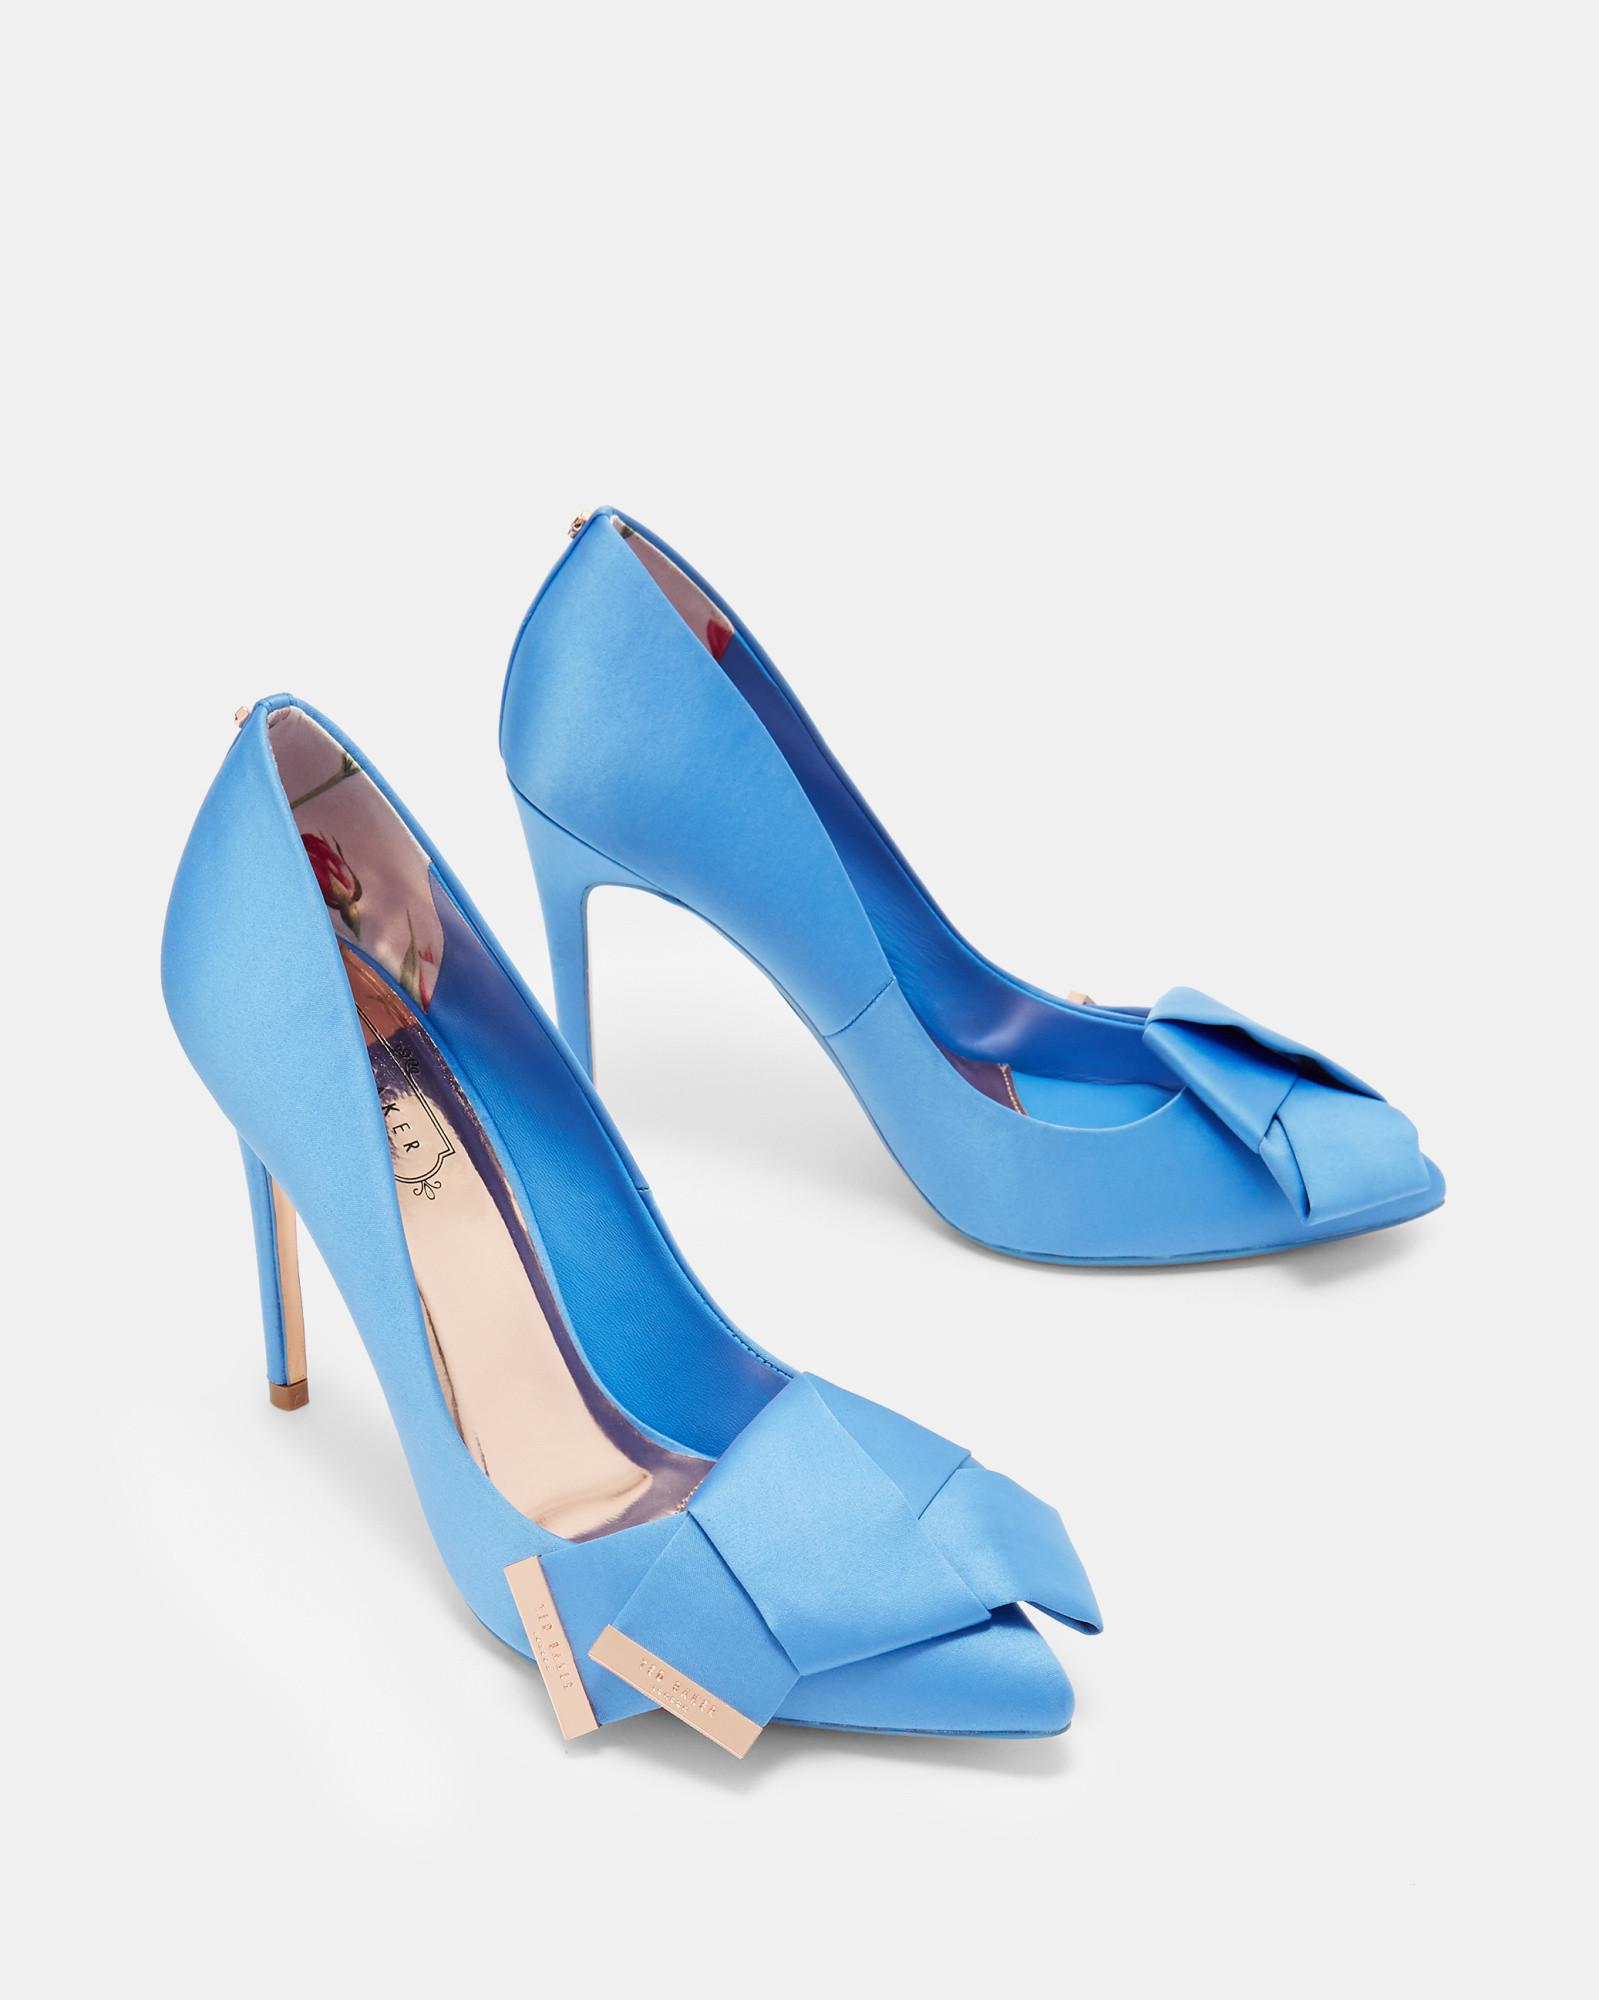 113e1bad4 Lyst - Ted Baker Knotted Bow Satin Courts in Blue